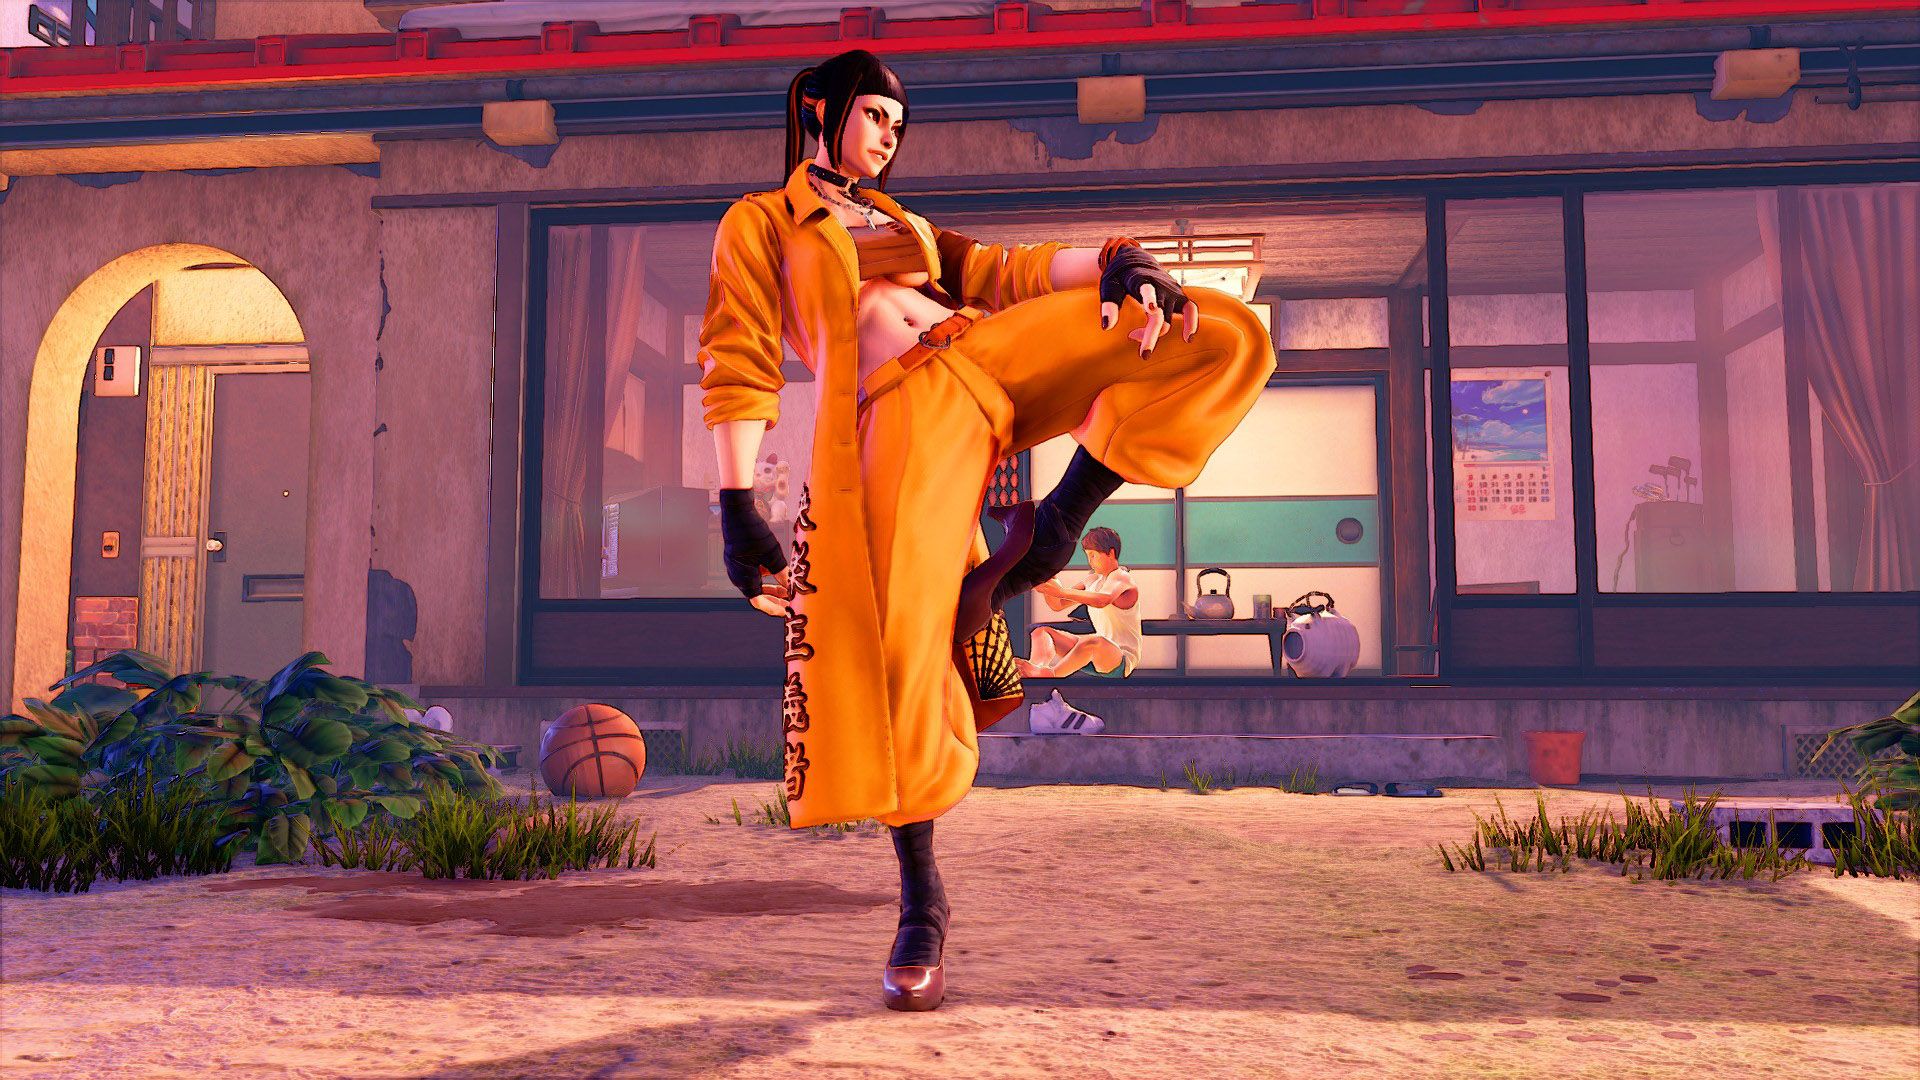 New Juri Costumes 2 out of 6 image gallery